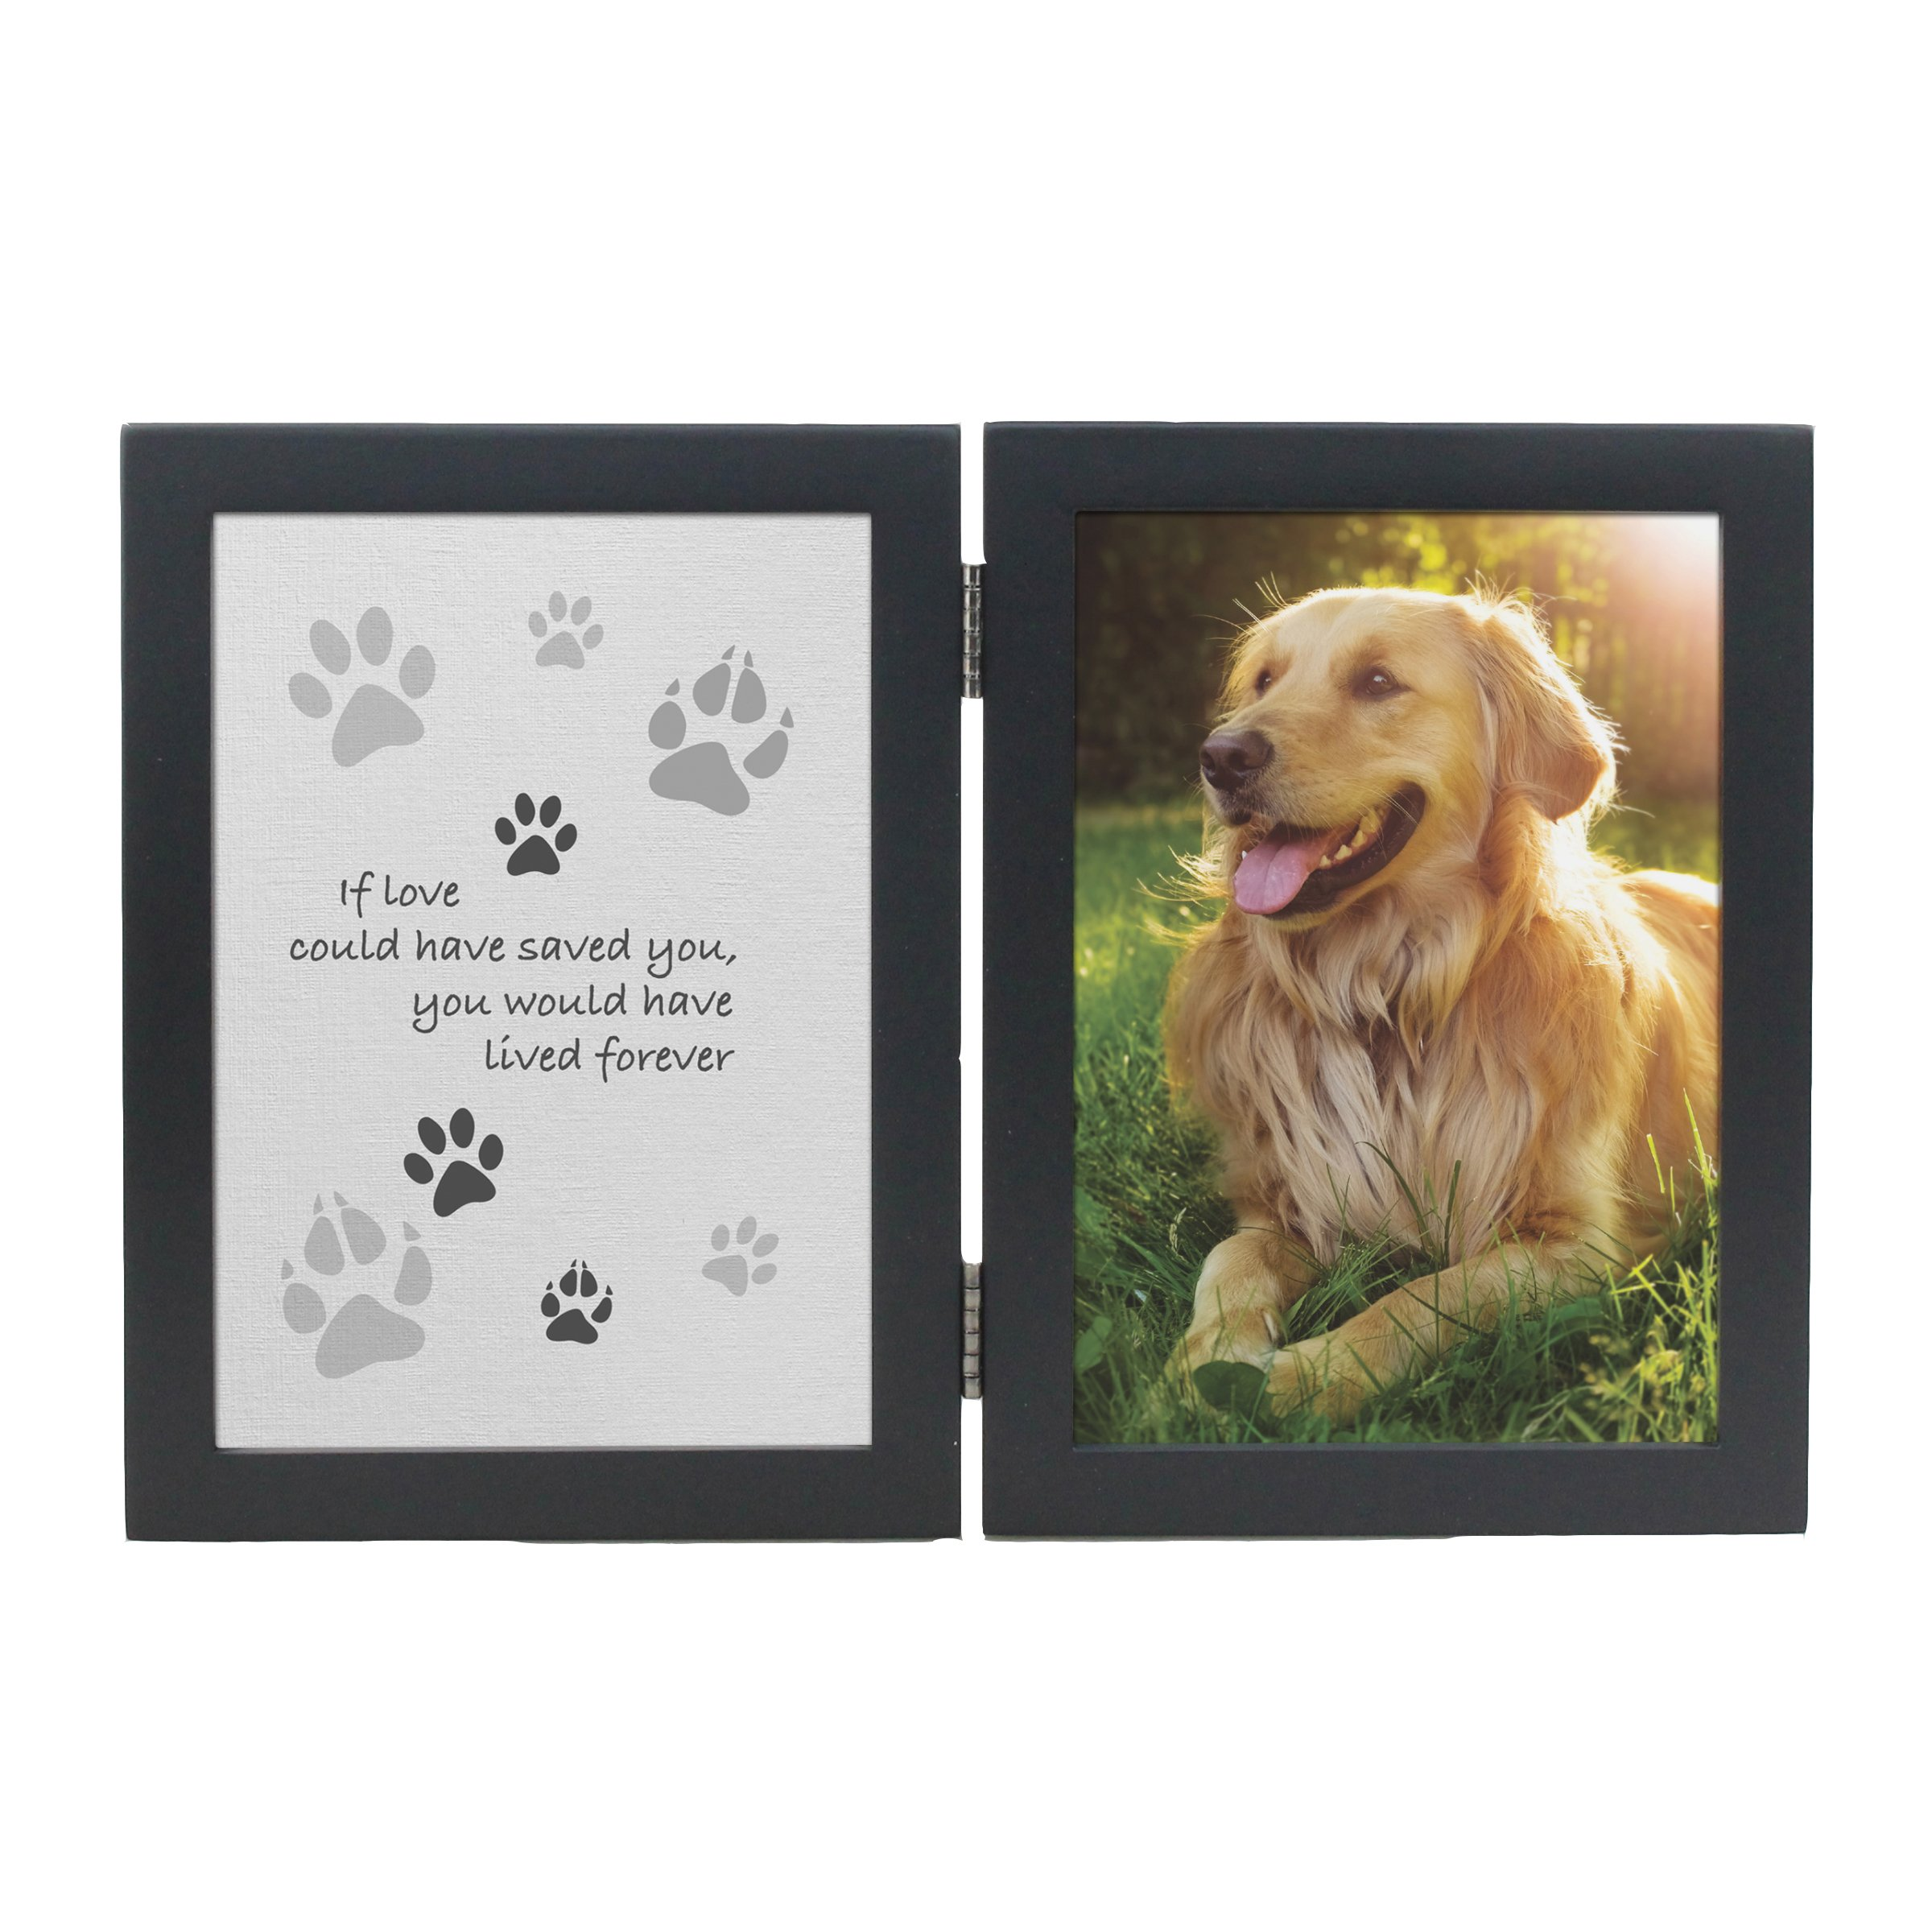 MMP Living Pet Memorial Frame - If Love Could Have Saved You - pet Loss Gift - Double Open Frame by MMP Living